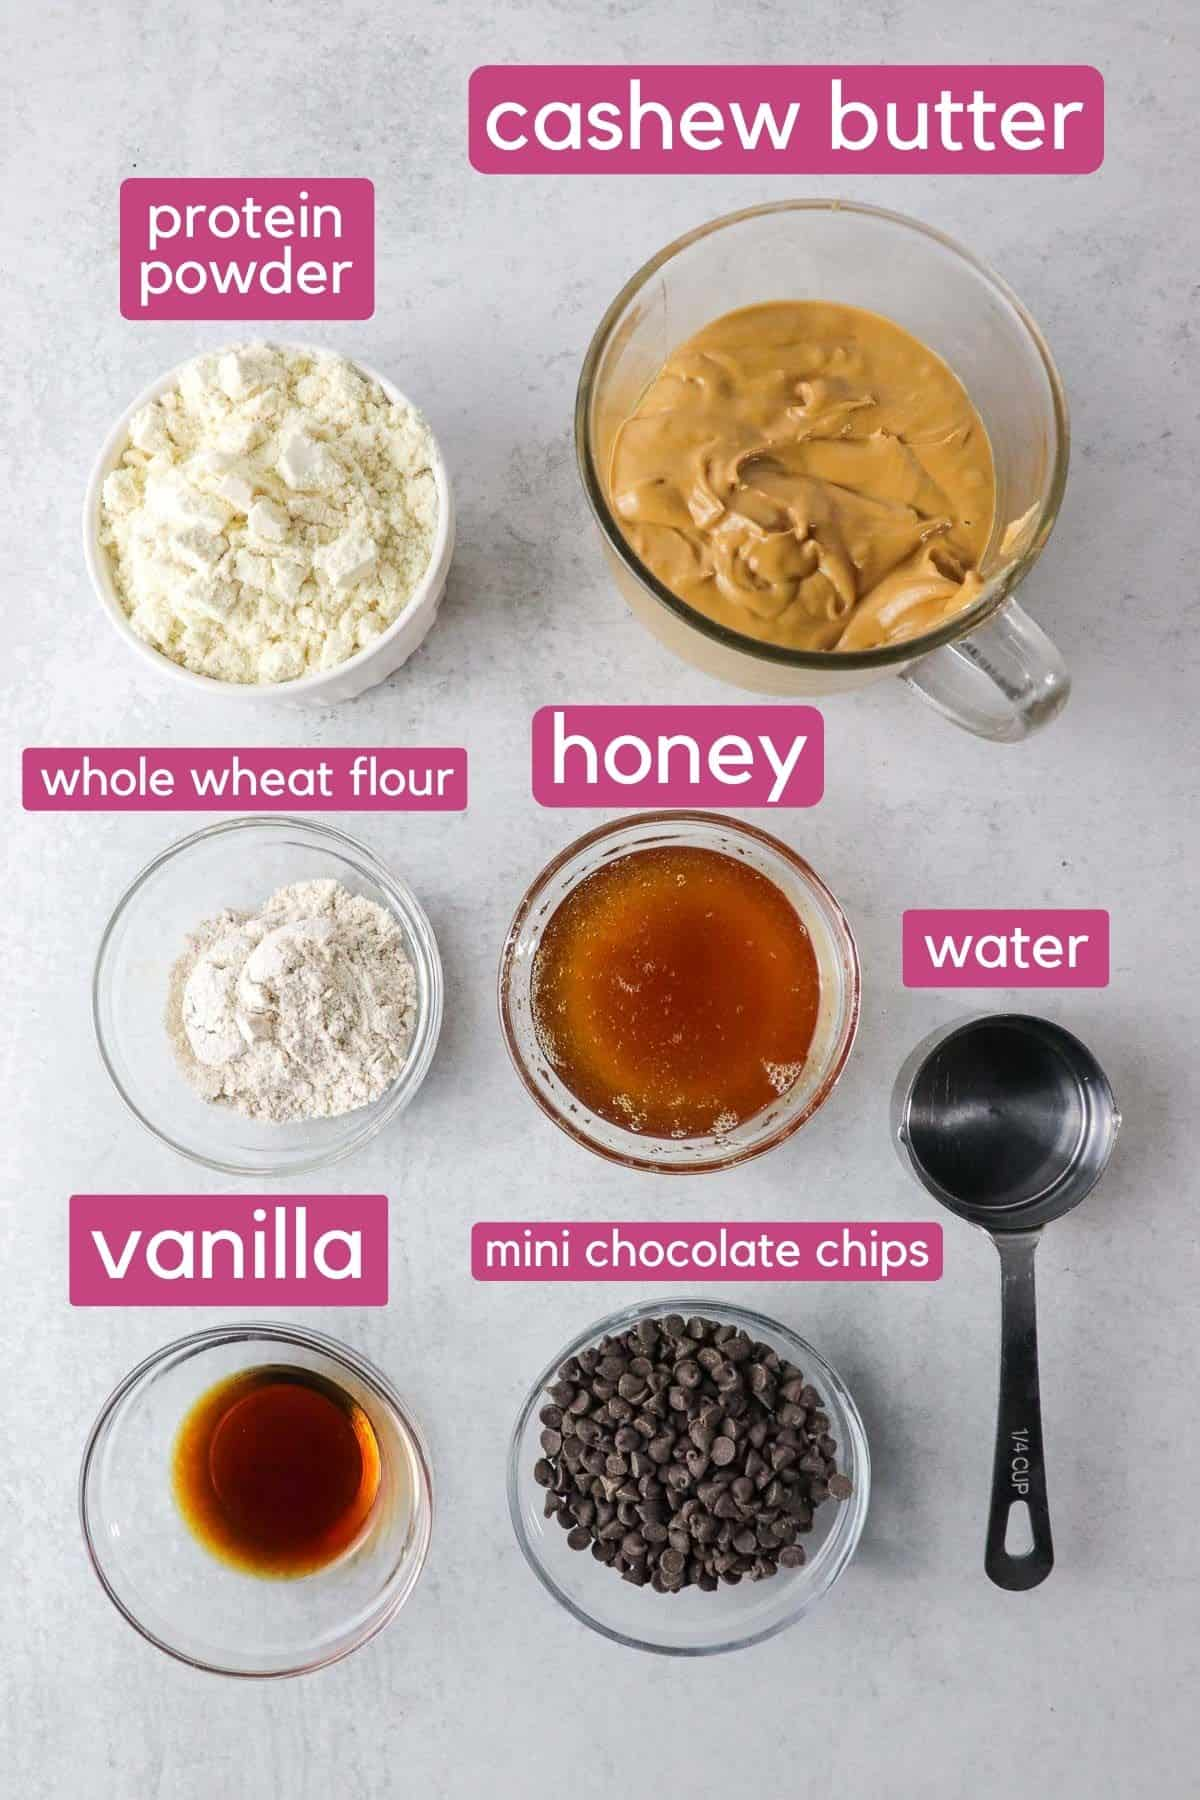 Cookie dough protein bar ingredients.